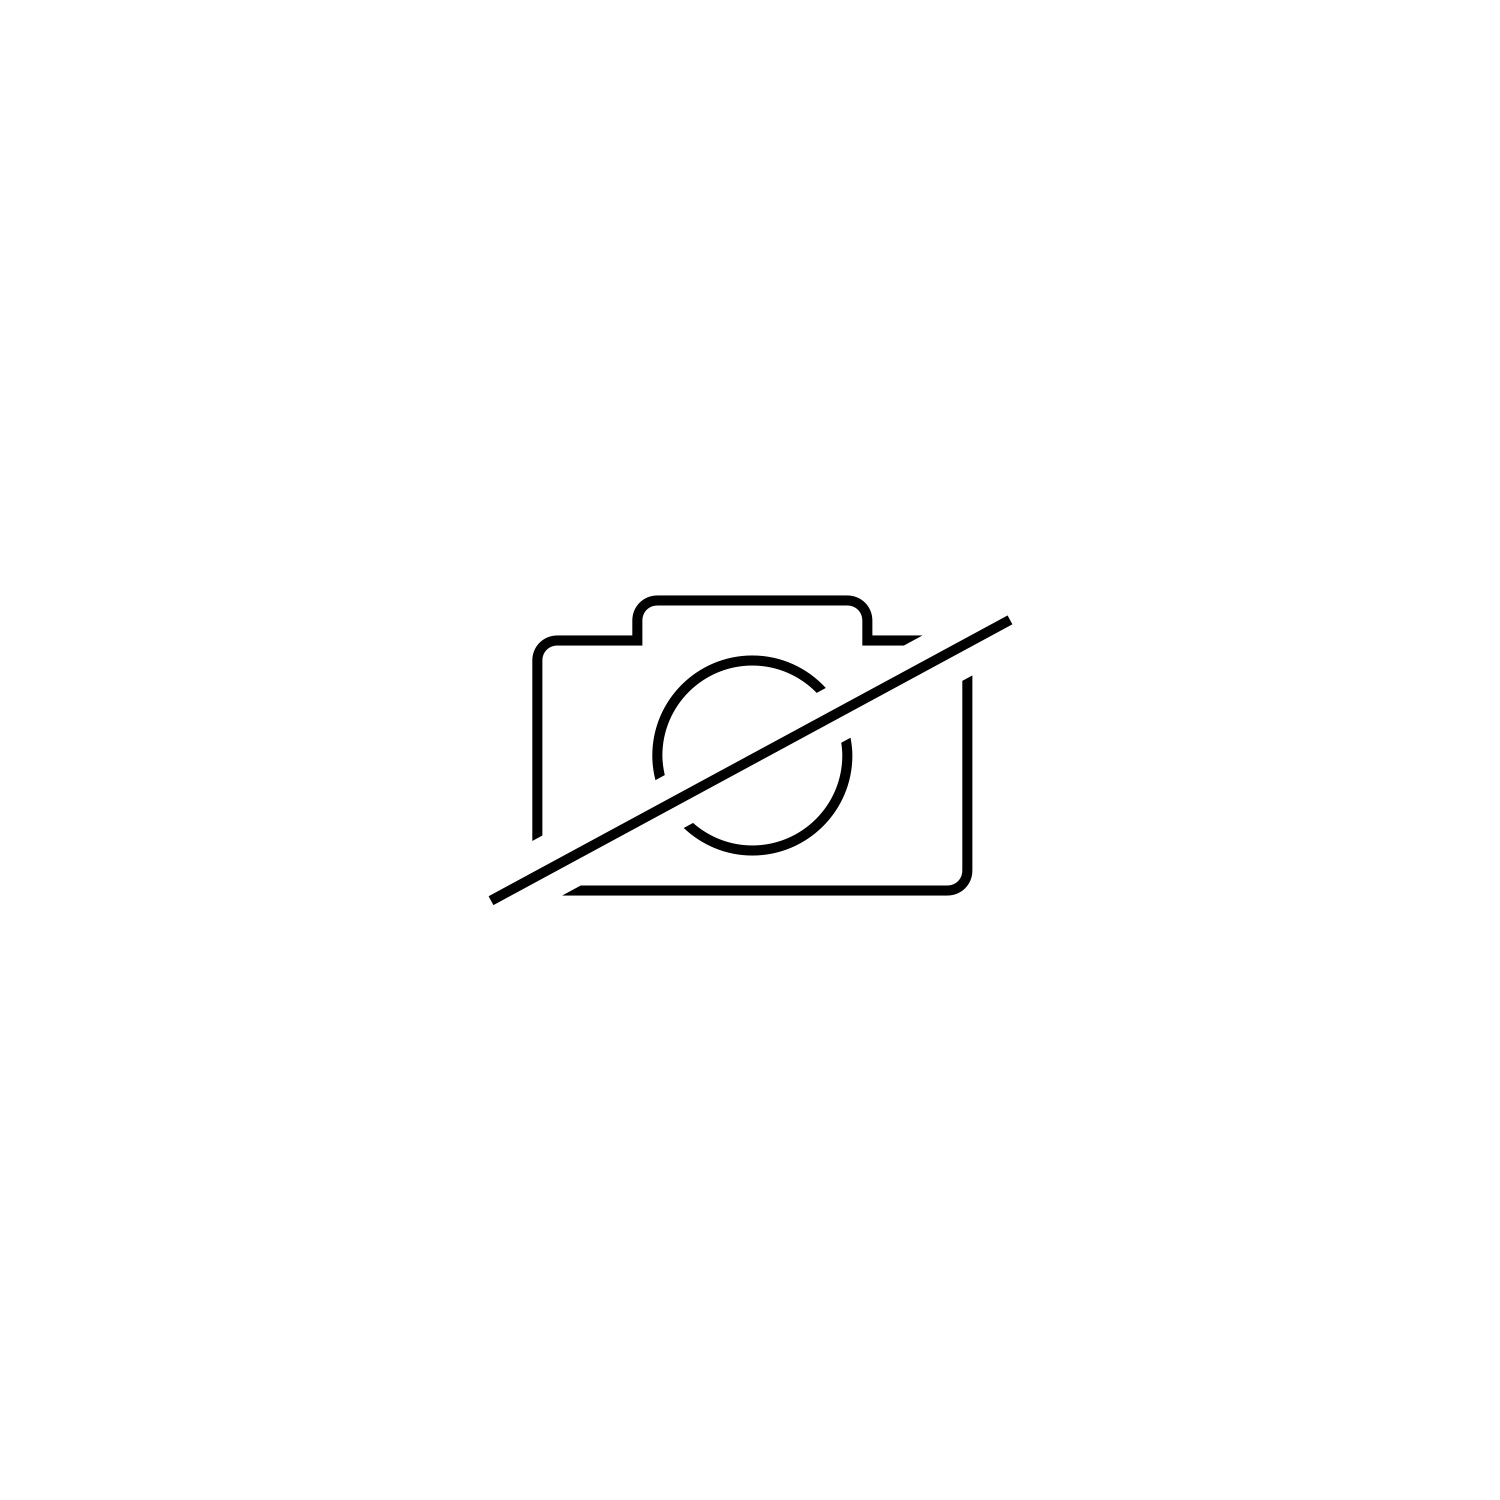 Audi Sport Zipoffjacket, Mens, black, S